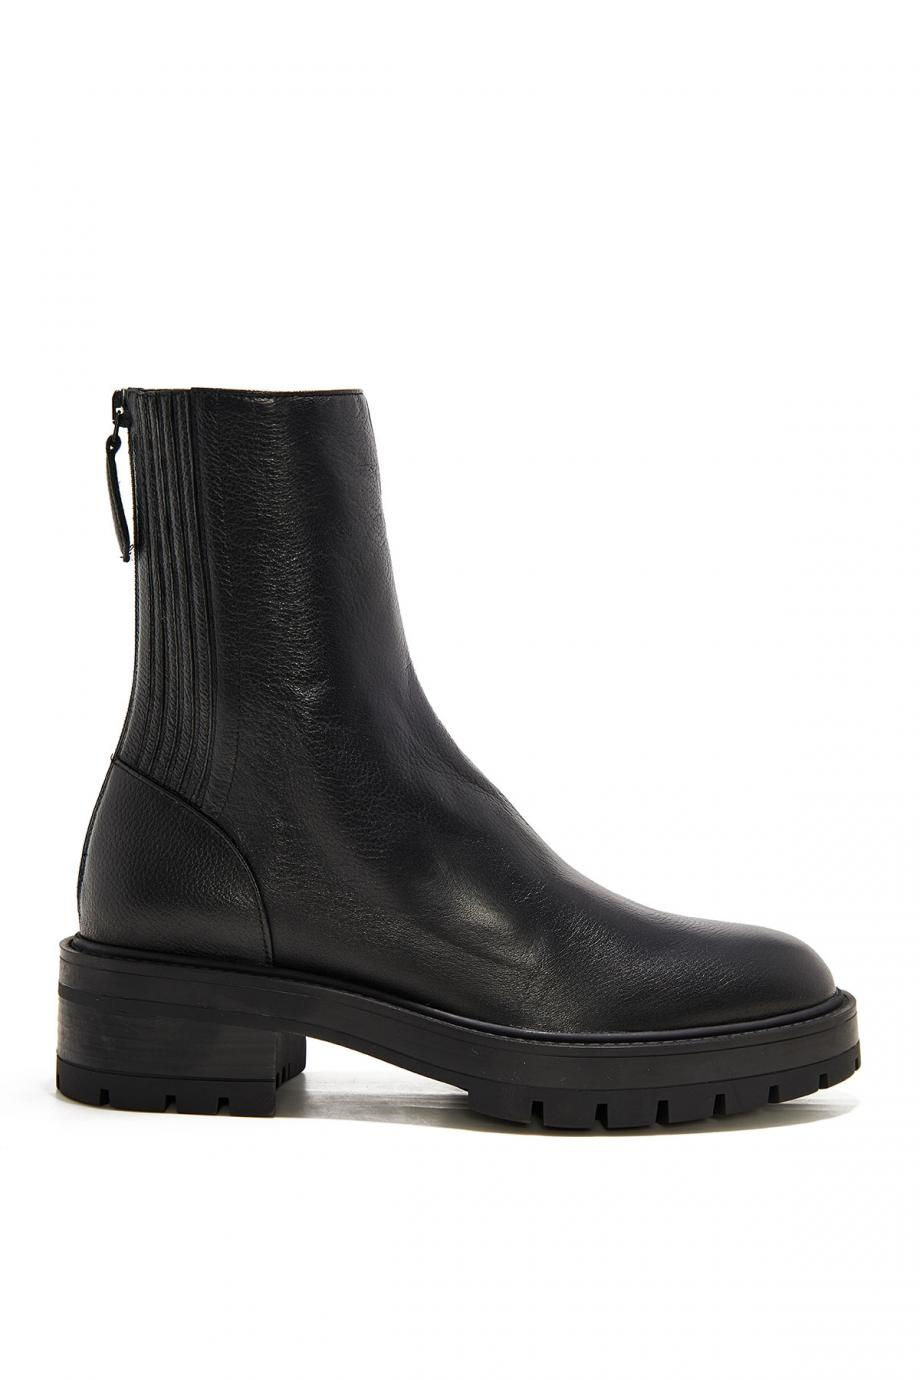 Saint Honore' leather combat boots